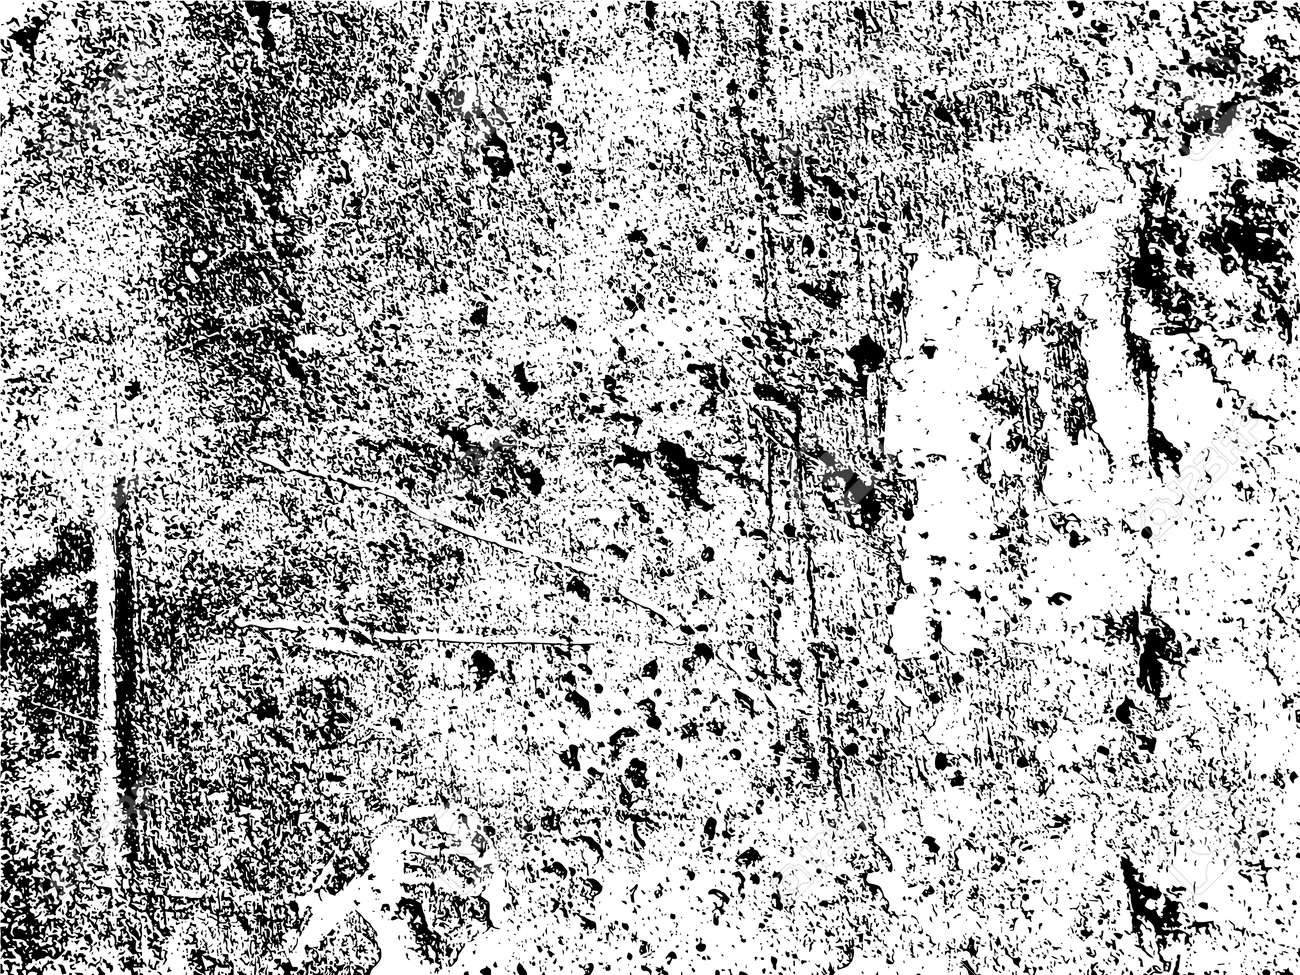 Concrete texture. Cement overlay black and white texture. - 169291832